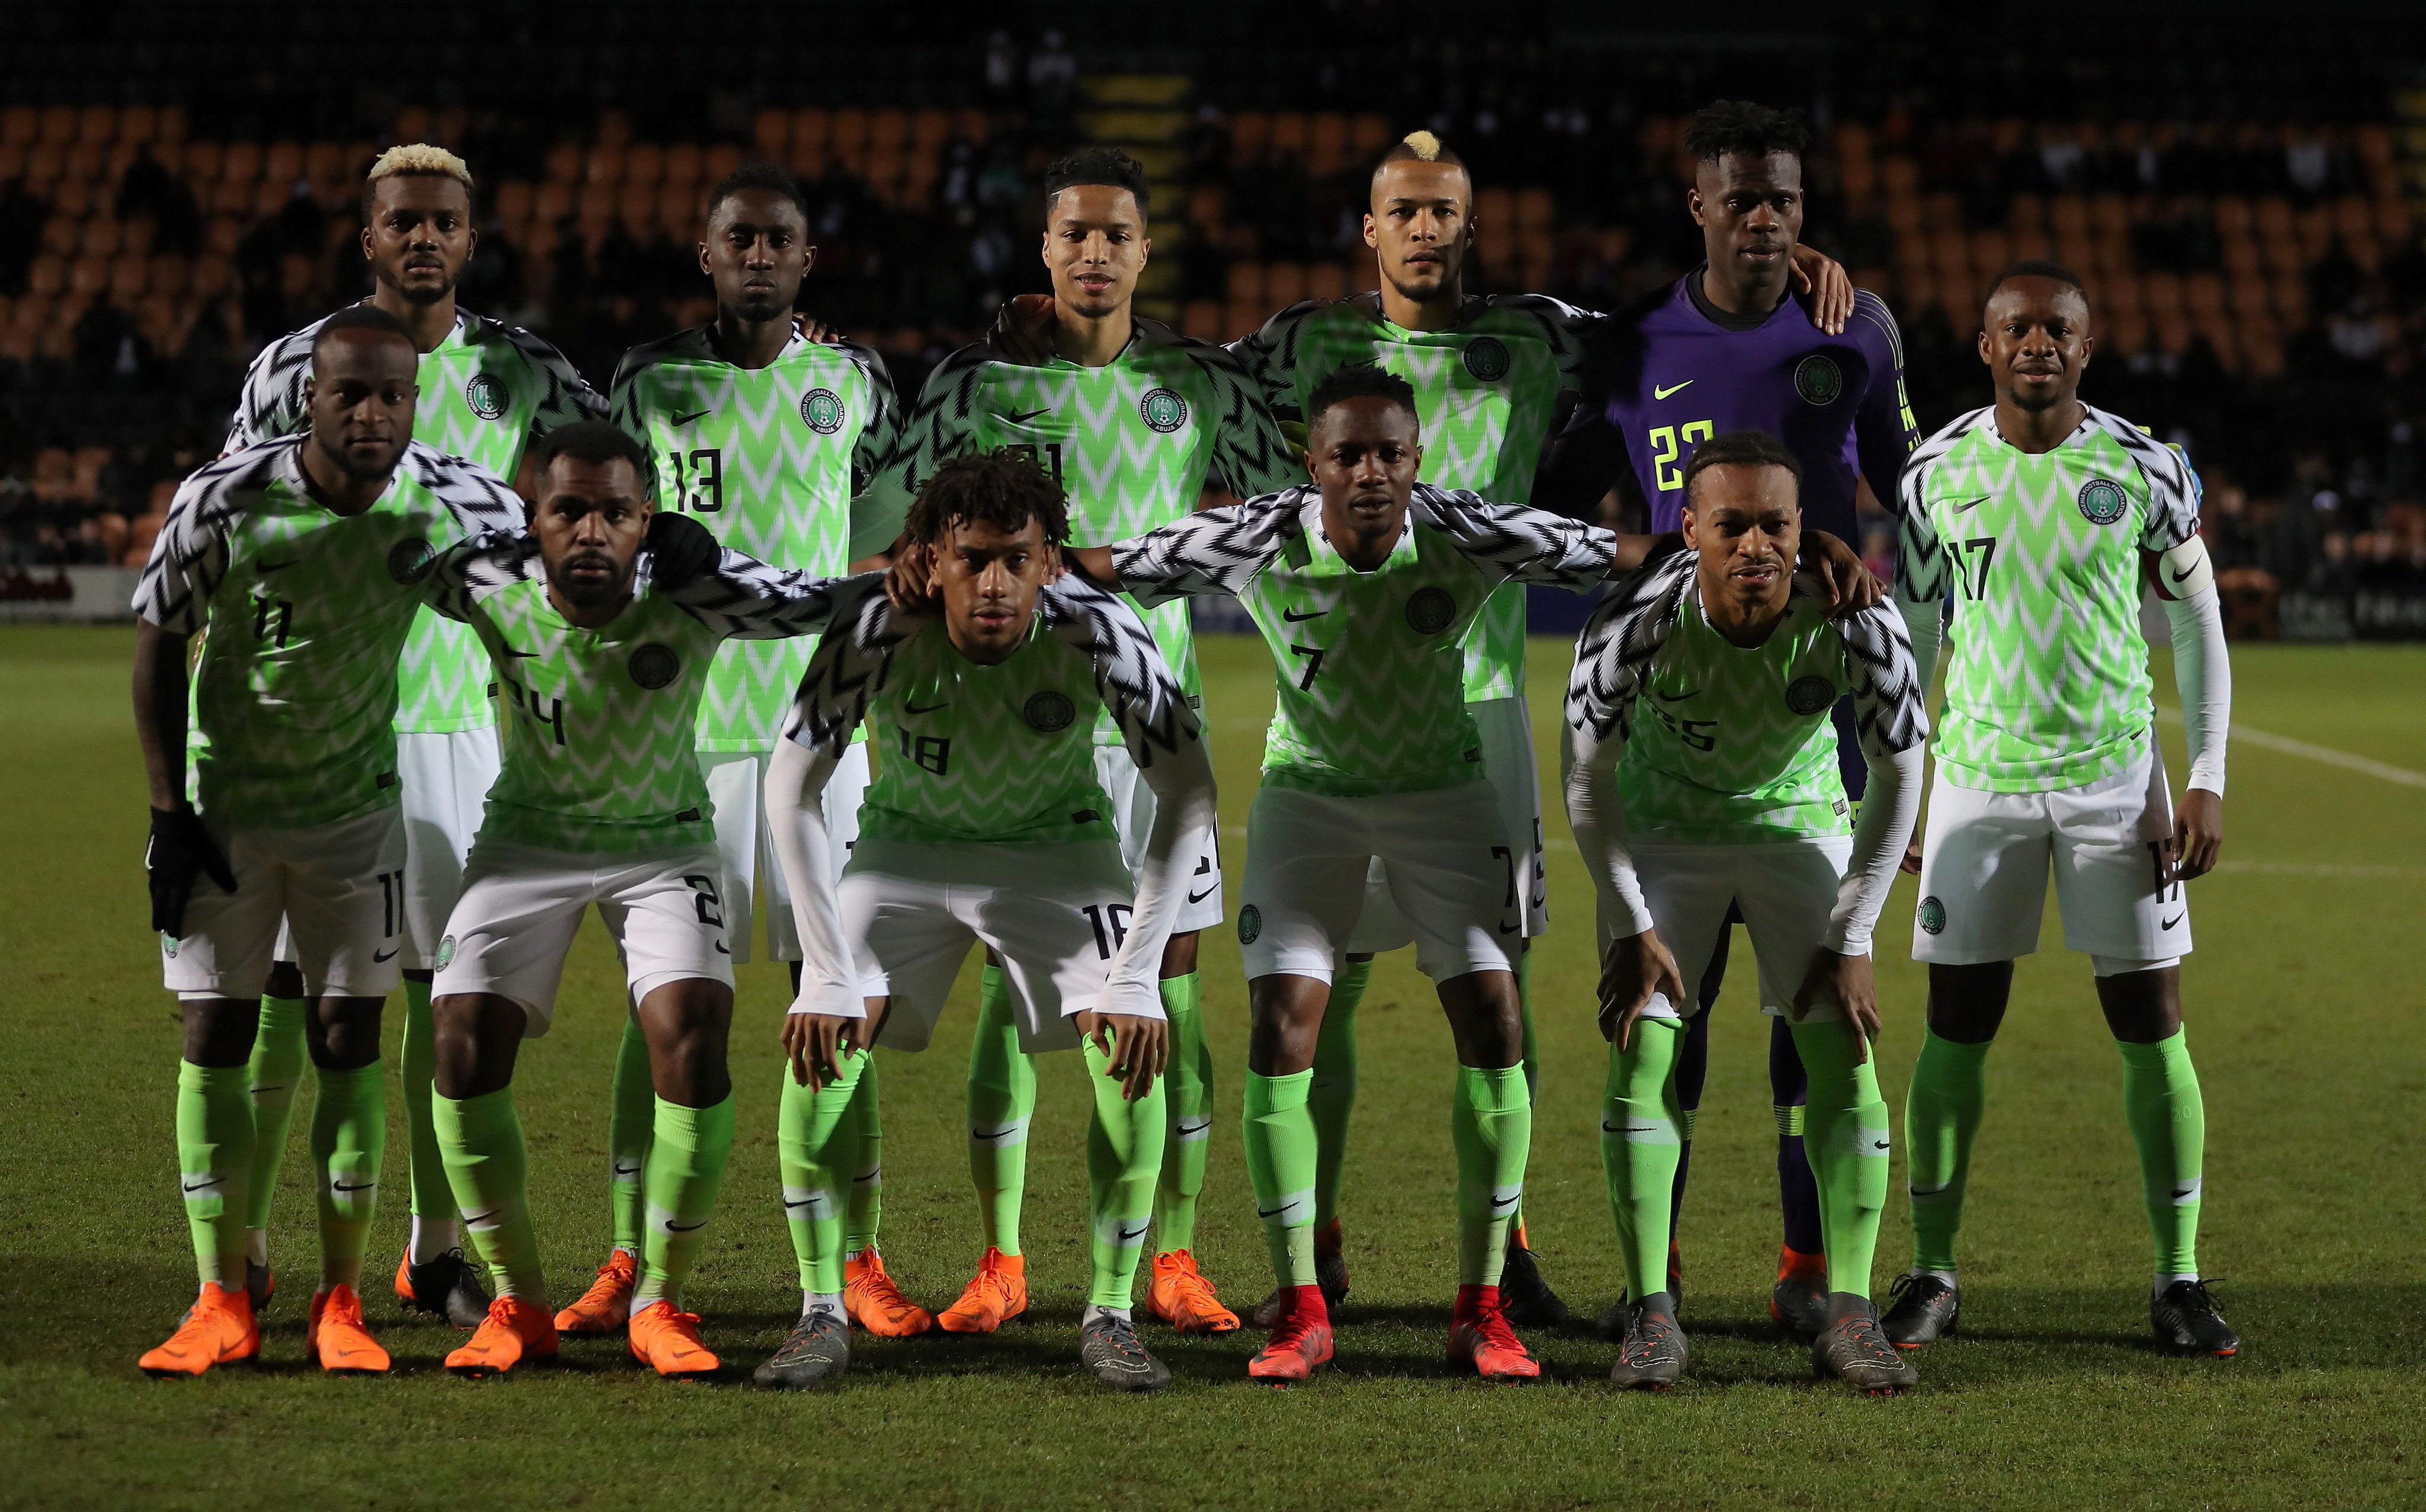 72f47e560 Nigerian soccer fans will have to be full of prayers that the country will  get a balanced and quality squad based on merit for this year  World Cup in  ...